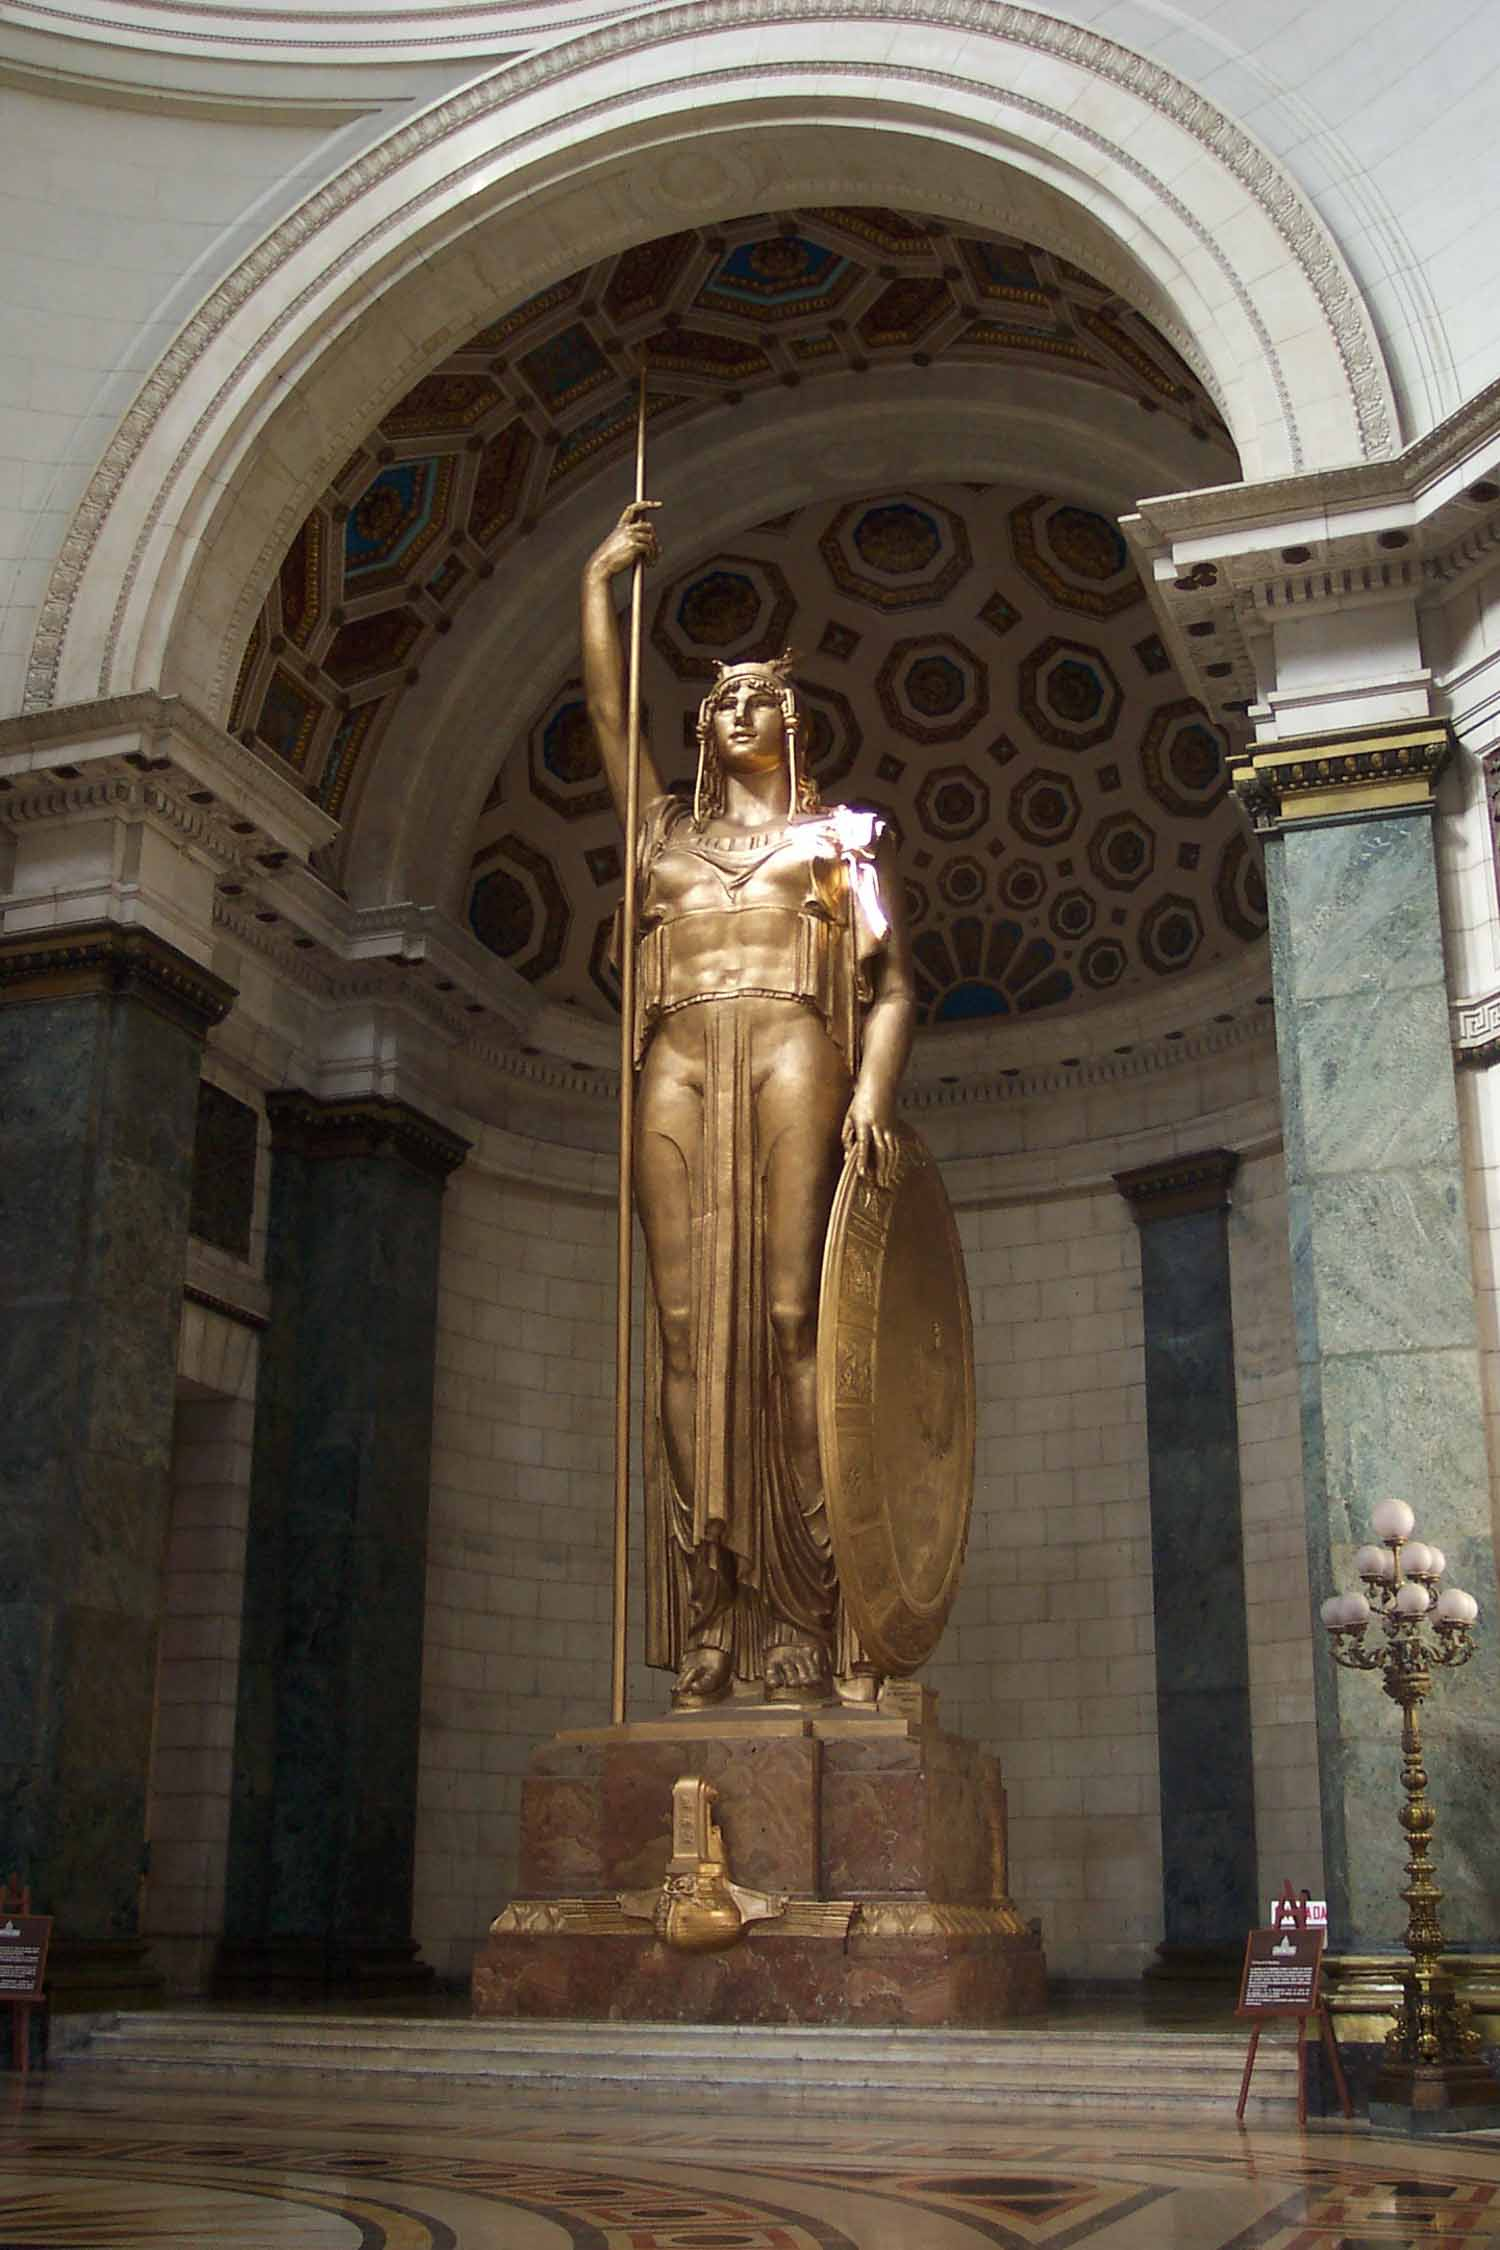 Statue of the Republica at the Capitol building in Havana Cuba